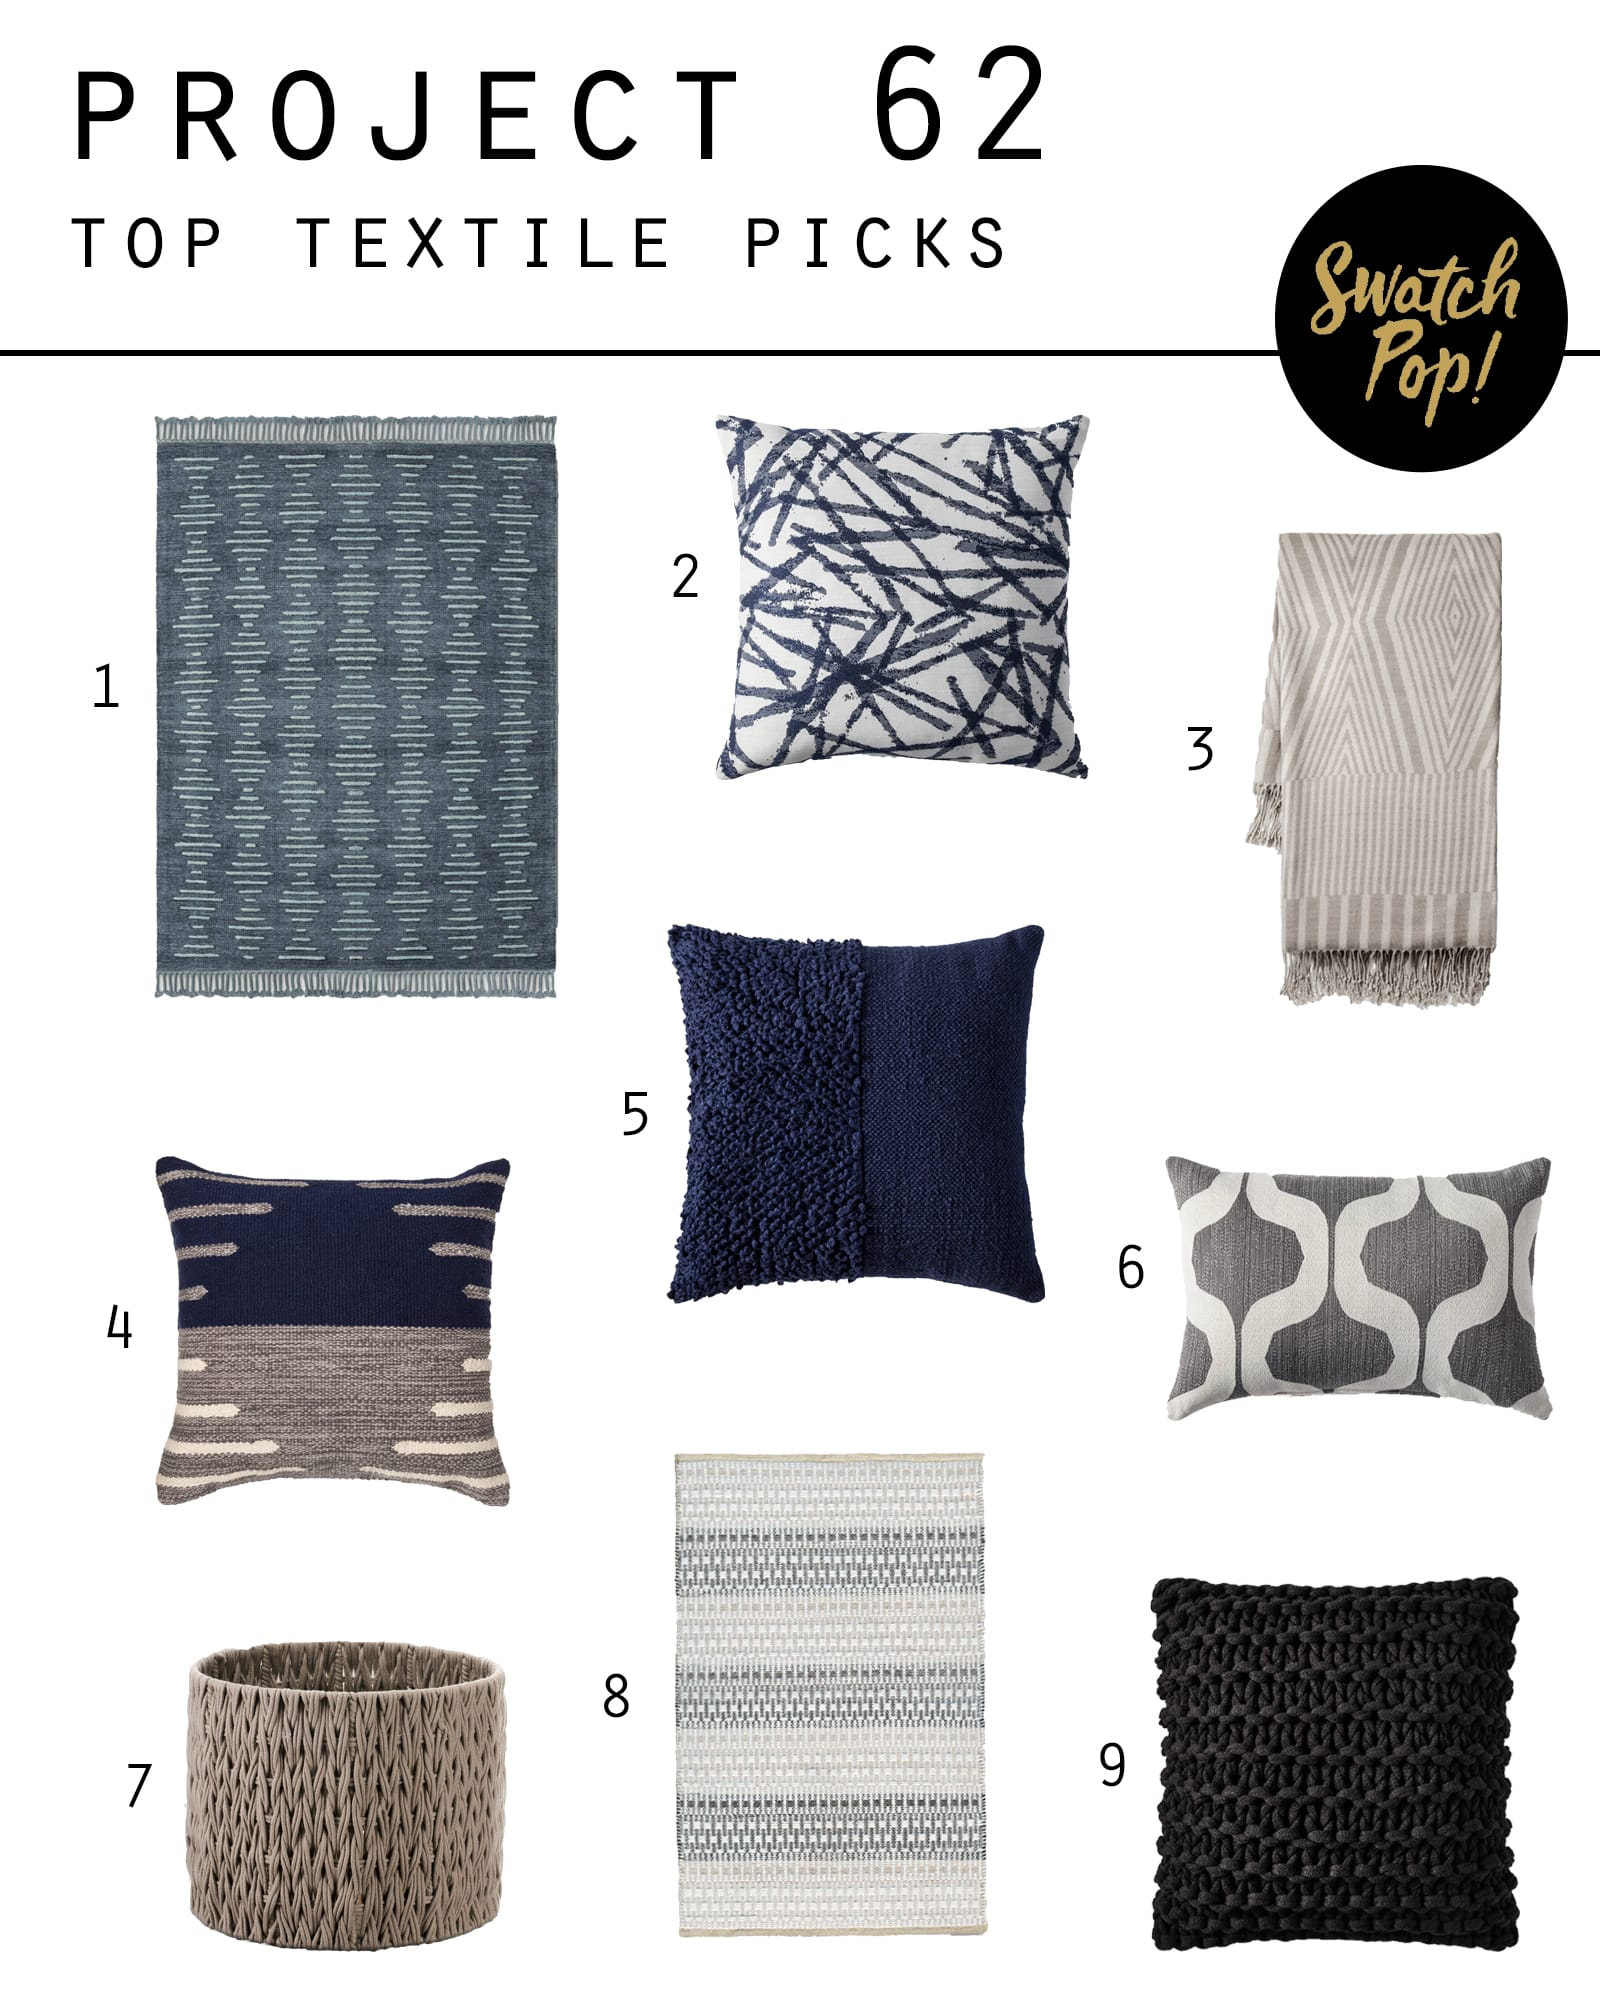 Project 62 Top Textile Picks